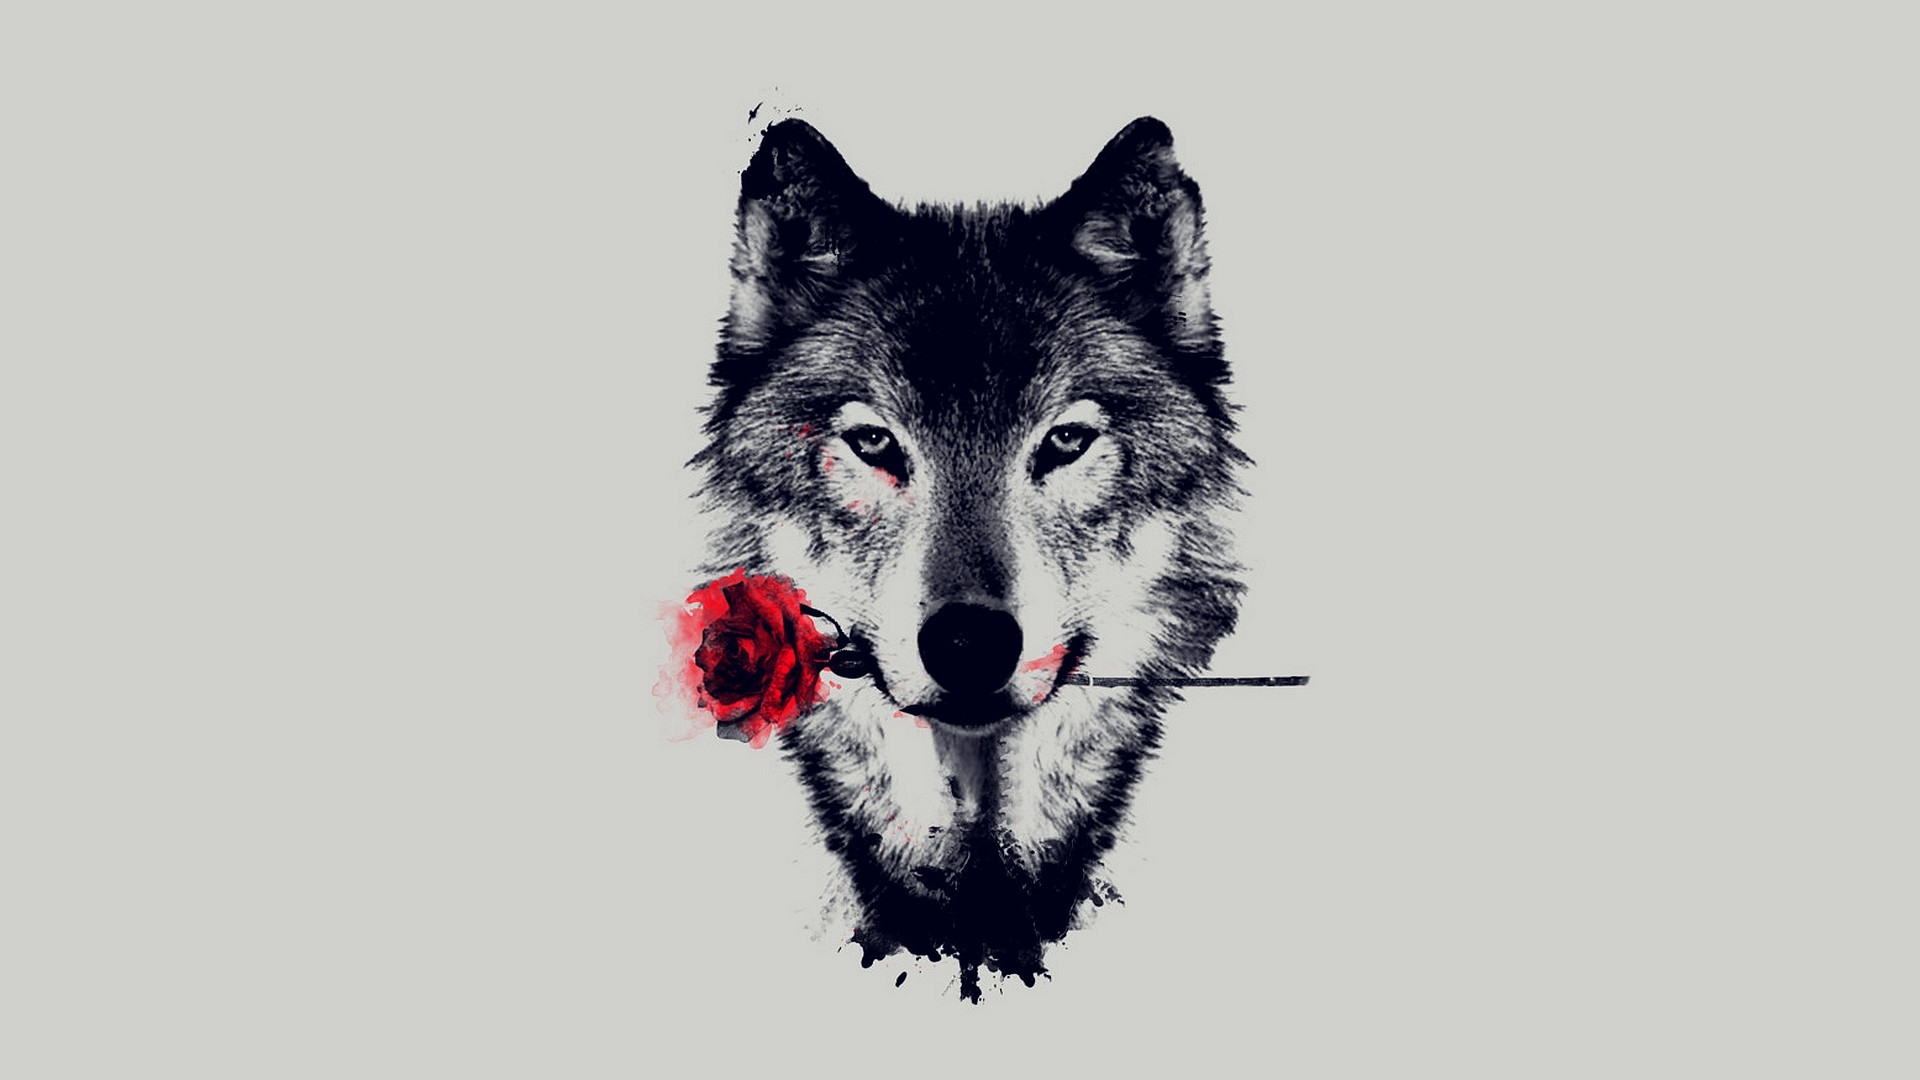 Wolf HD Wallpapers Backgrounds Wallpaper   HD Wallpapers   Pinterest   Wolf  wallpaper, Wallpaper and Wallpapers android